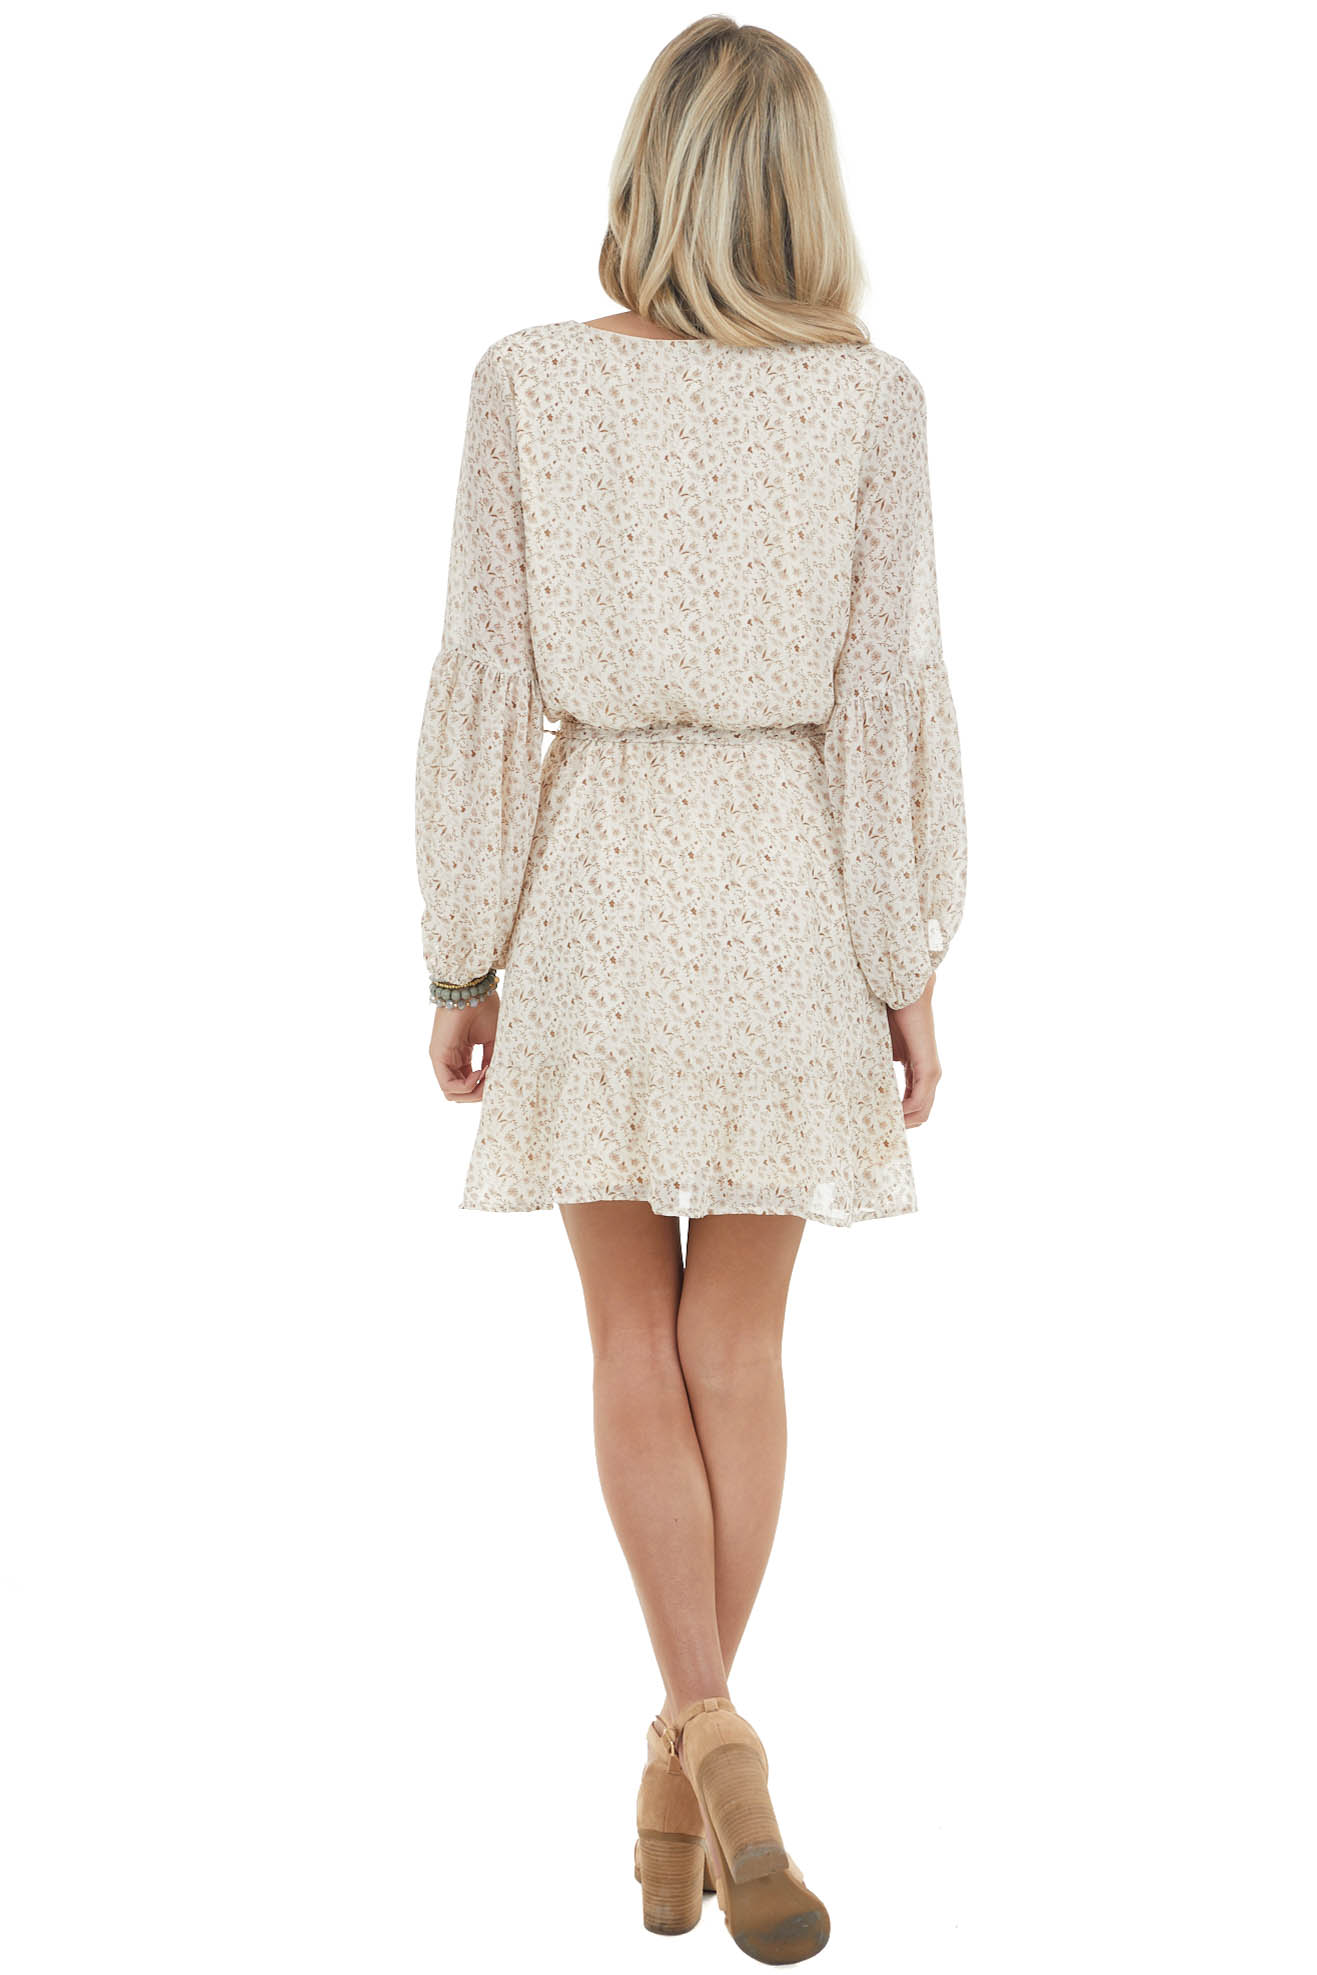 Cream Ditsy Floral Print Short Surplice Dress with Front Tie